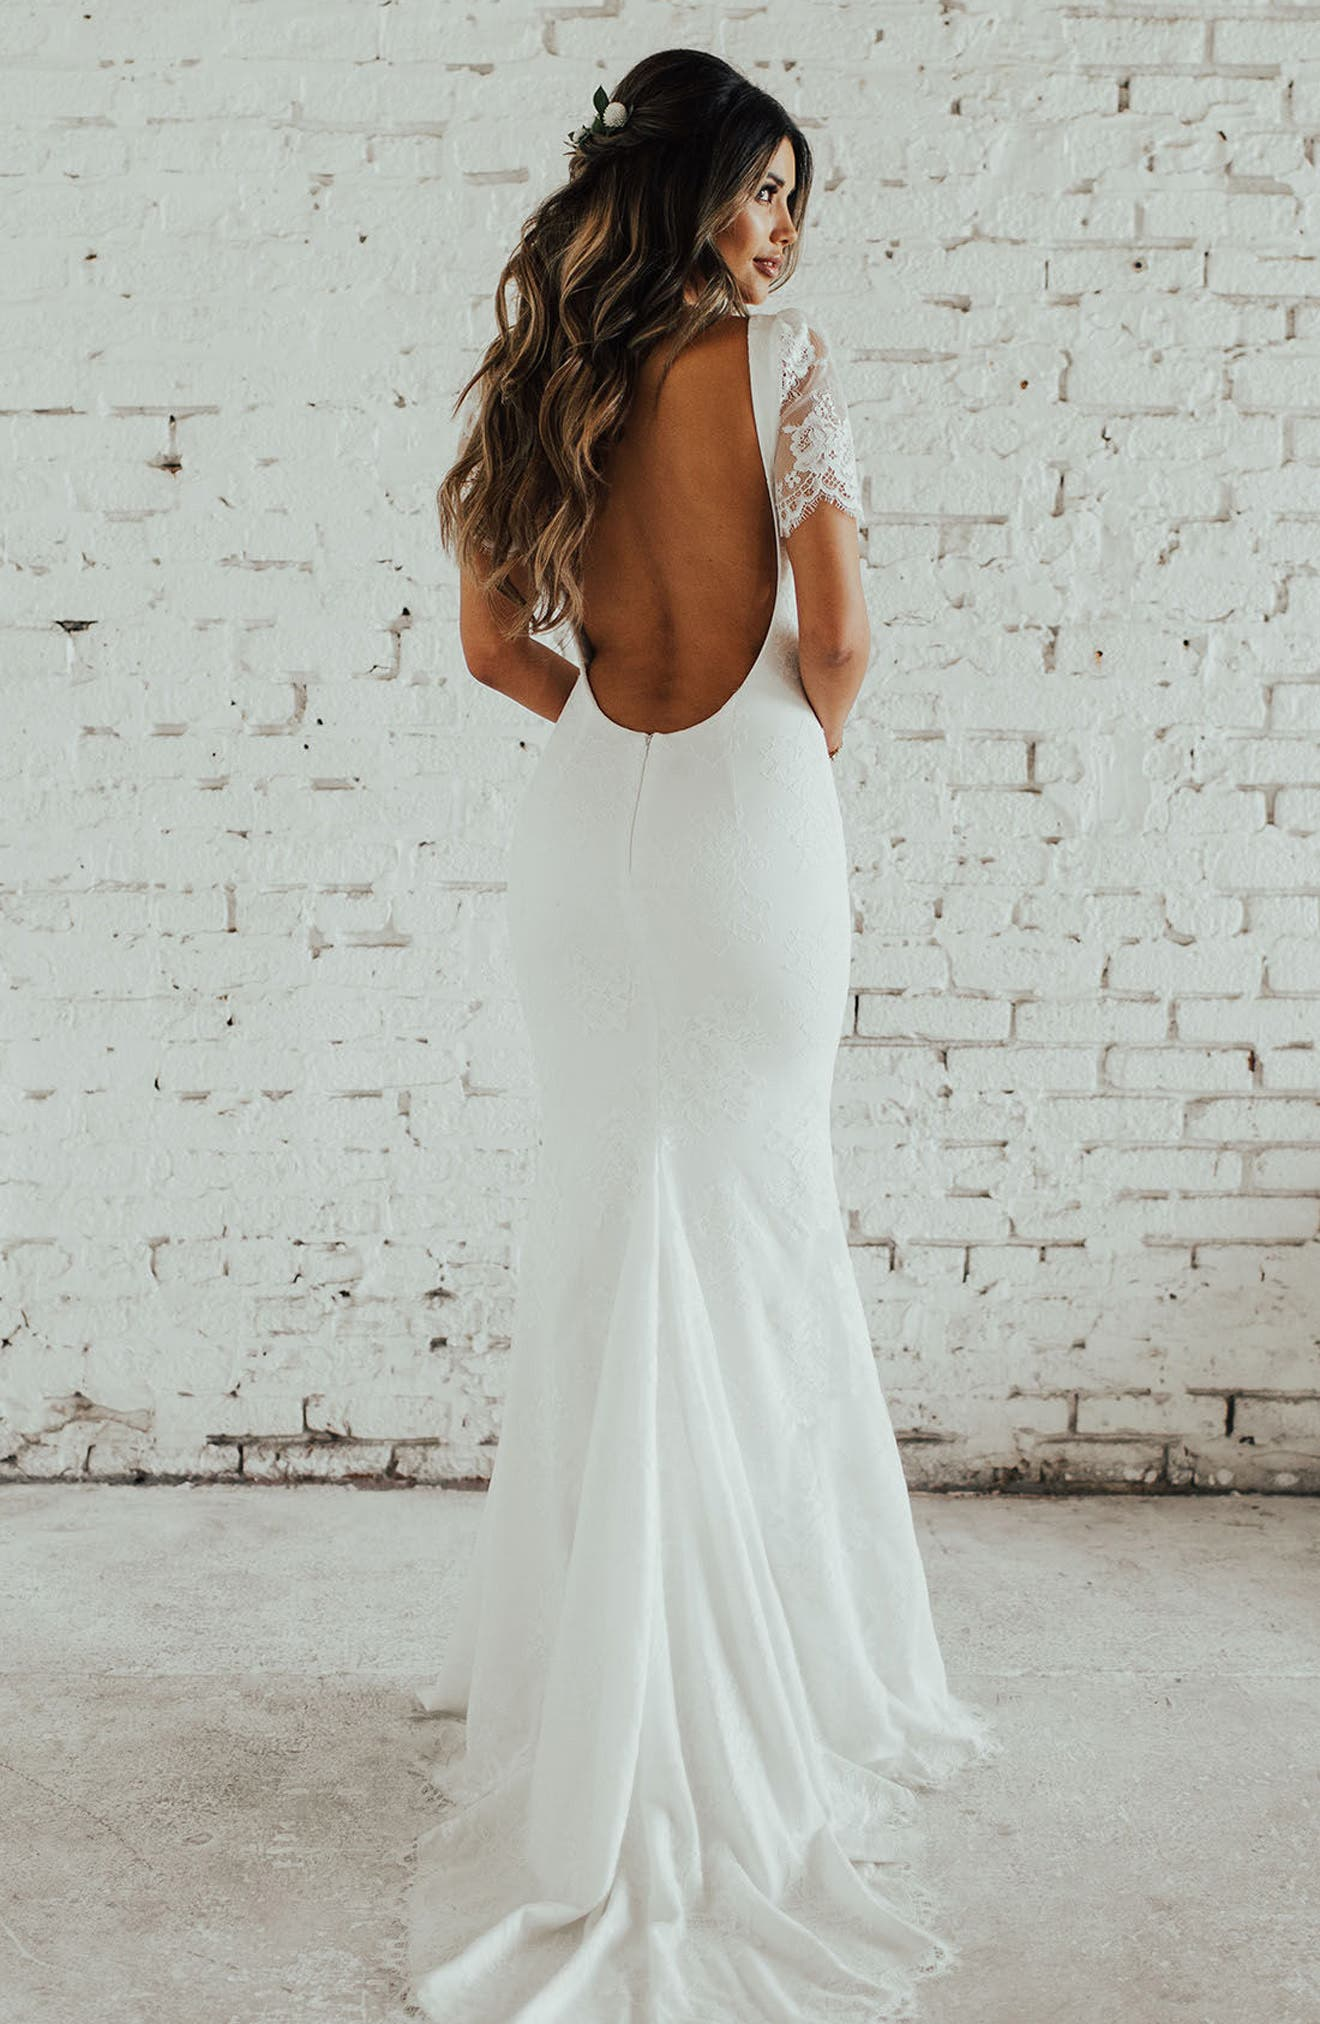 Malaga Lace Trumpet Gown,                             Alternate thumbnail 2, color,                             Ivory/ Ivory